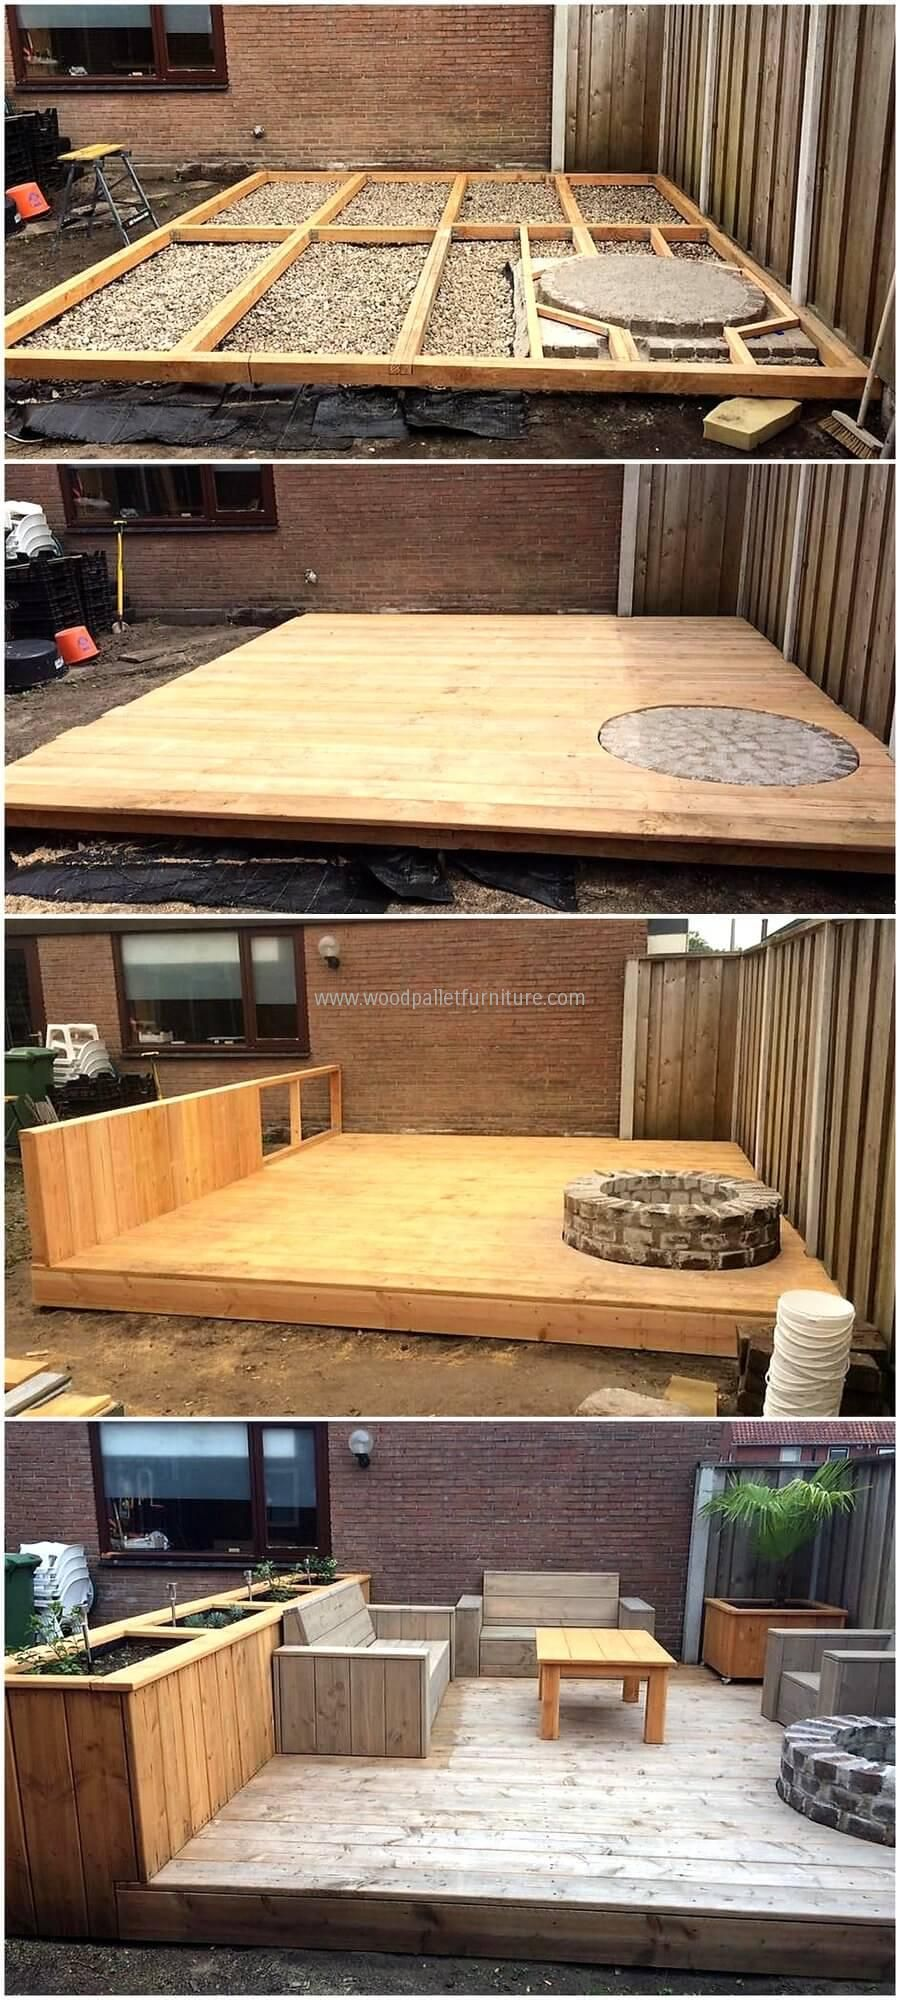 Diy Wood Pallets Made Terrace Project Bricolaje Madera